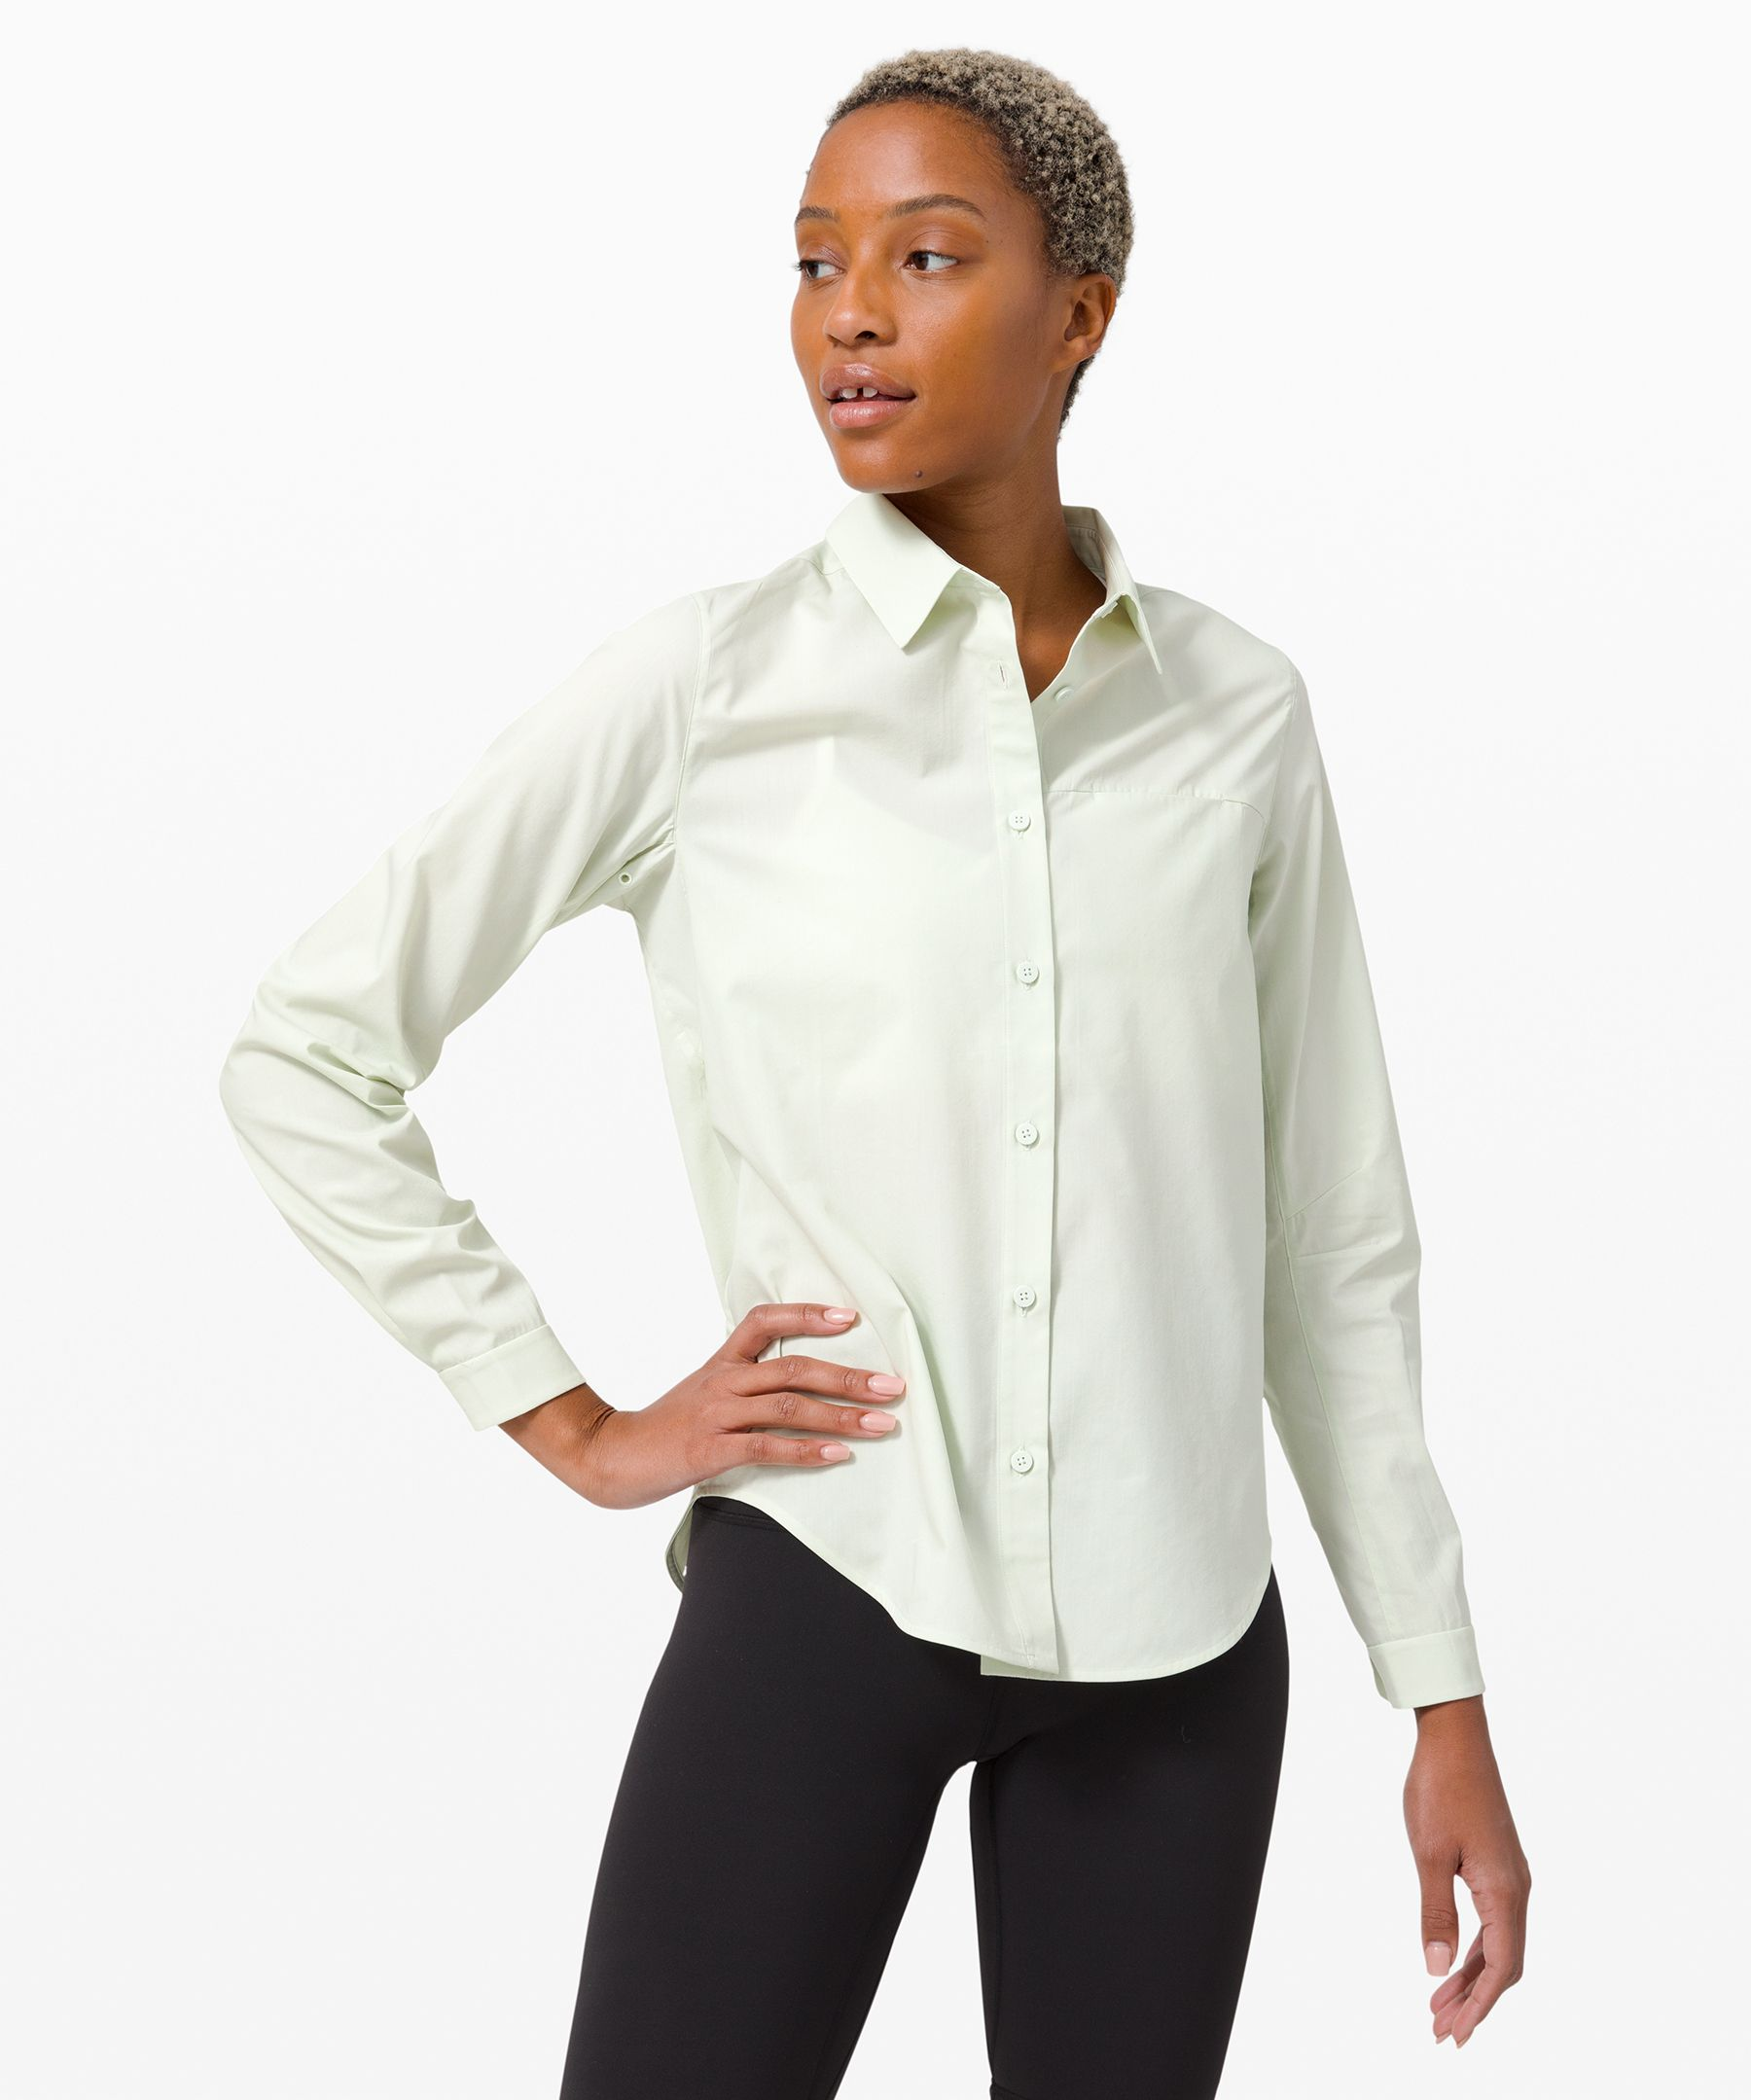 Take the day in this classic collared shirt. A large pleat in the back offers a relaxed fit so you can check everything off in comfort